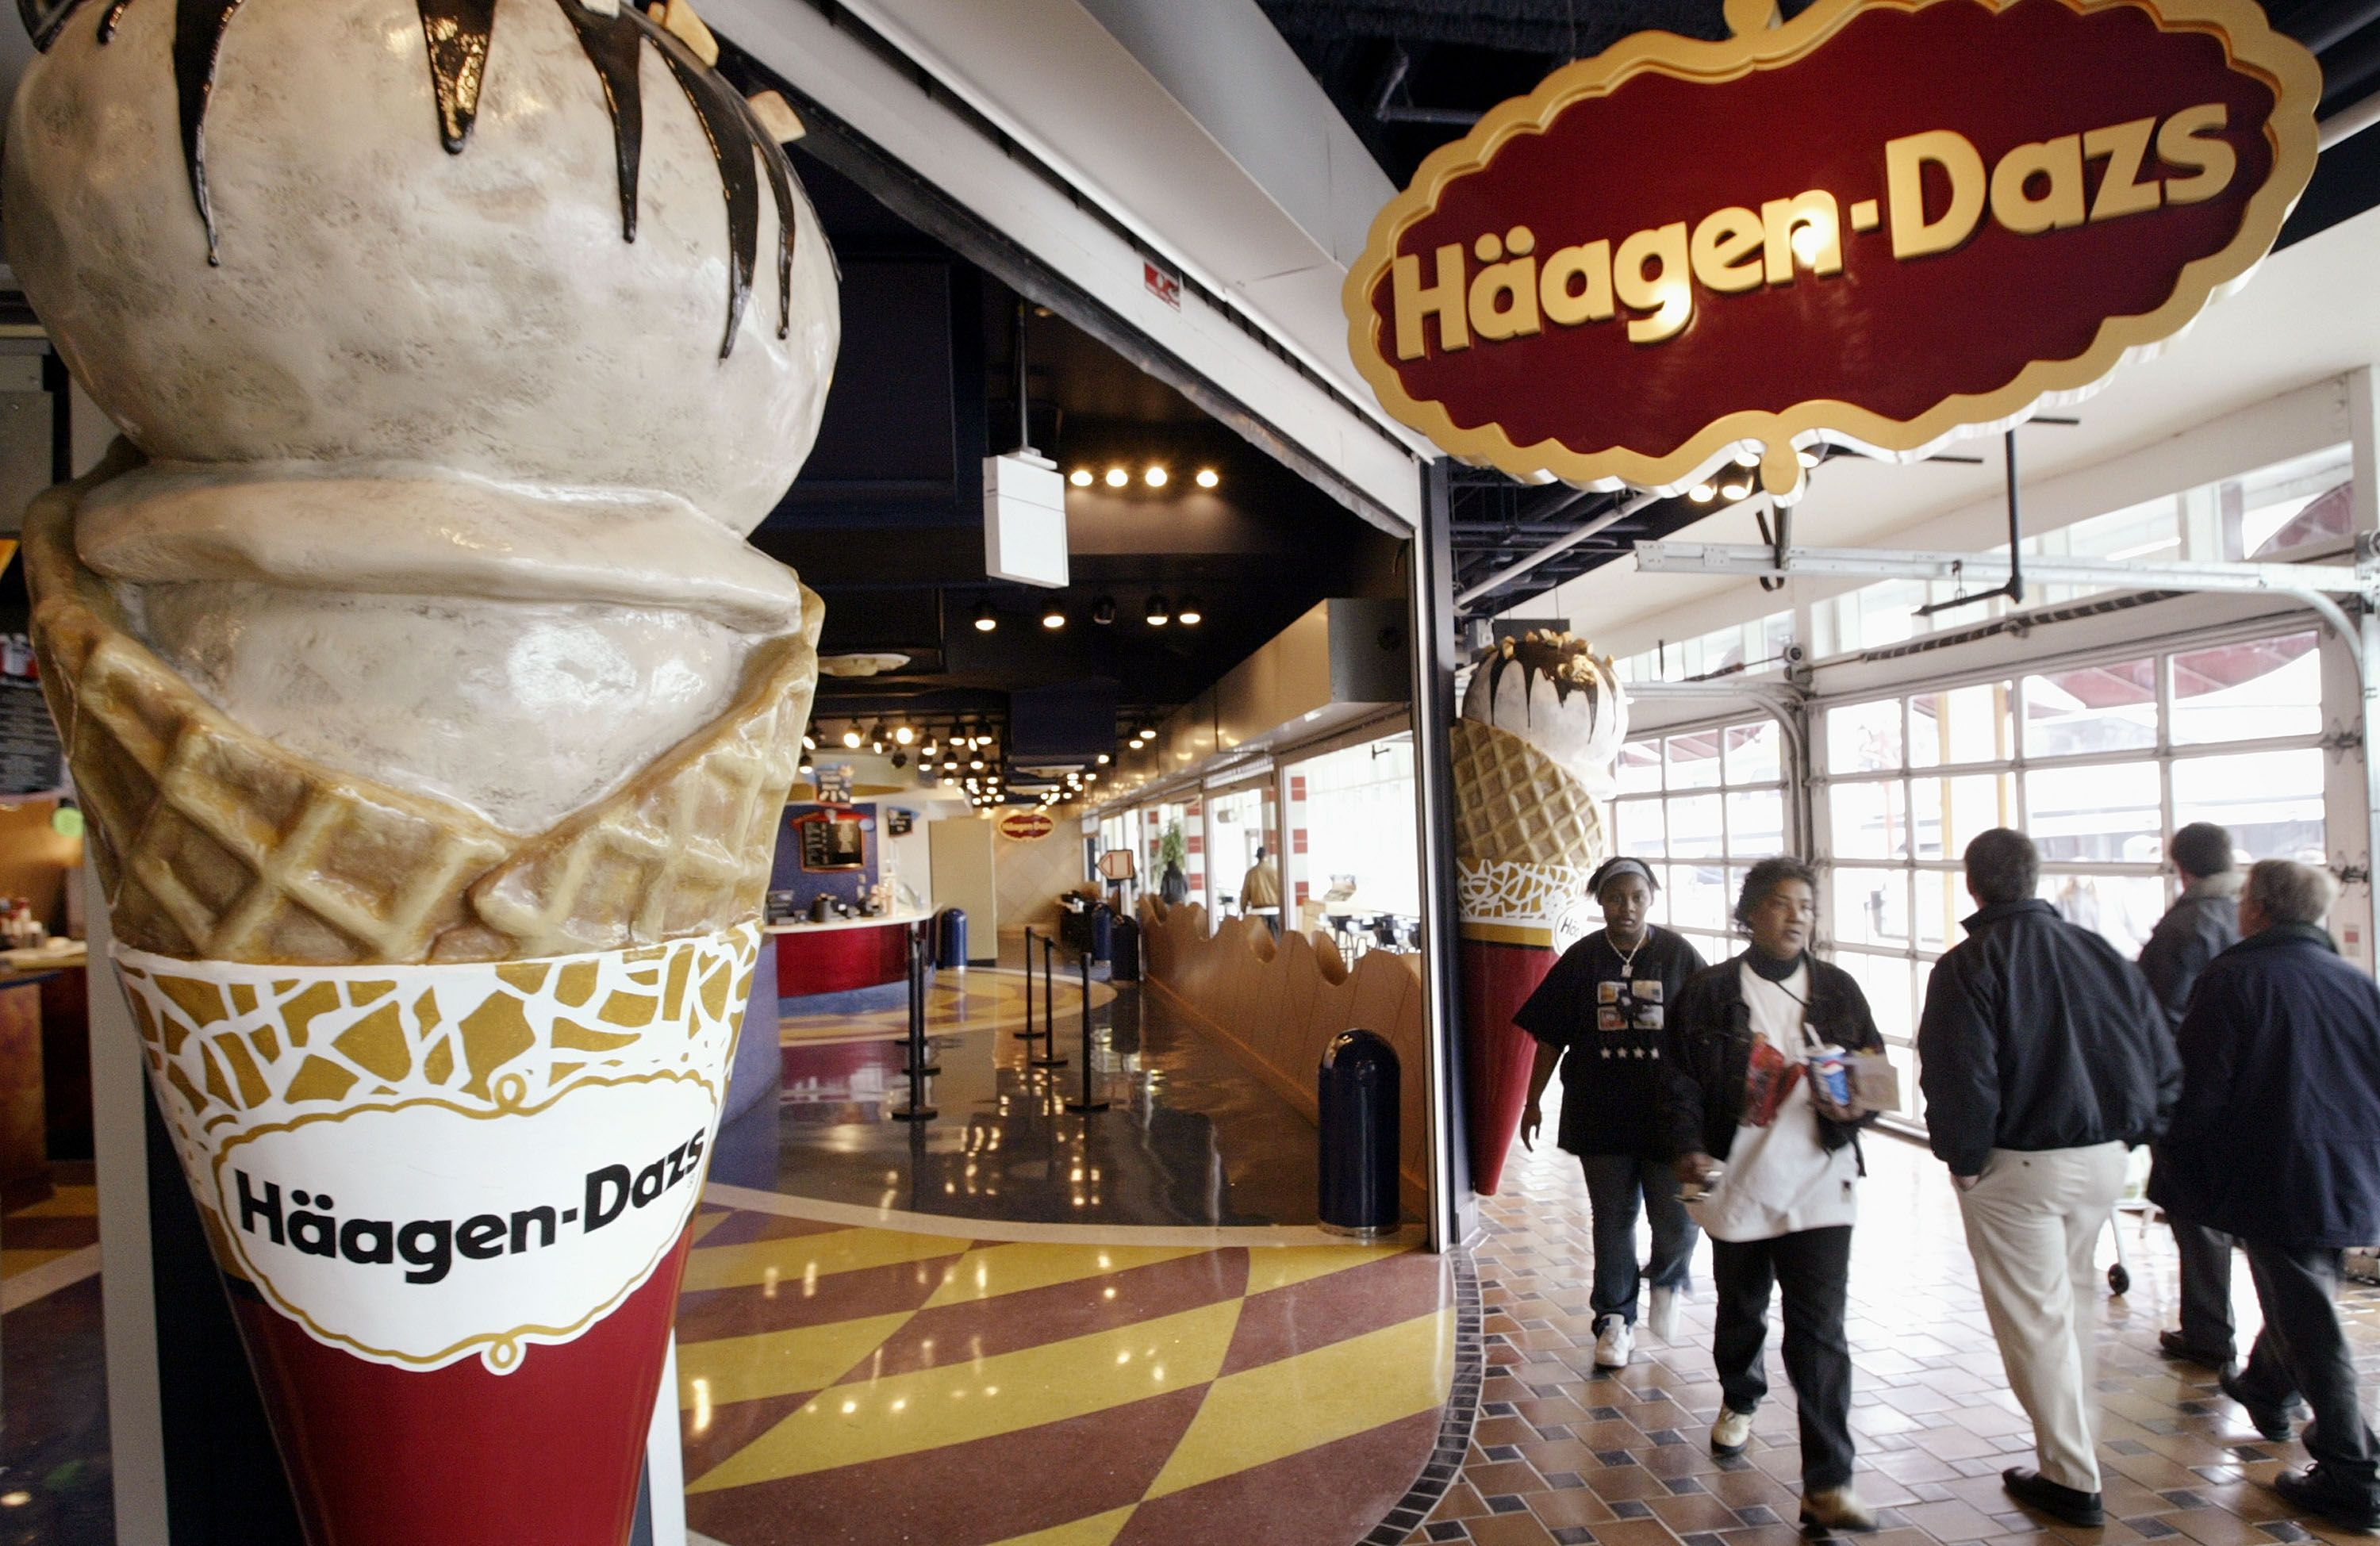 Häagen-Dazs' Free Cone Day is today